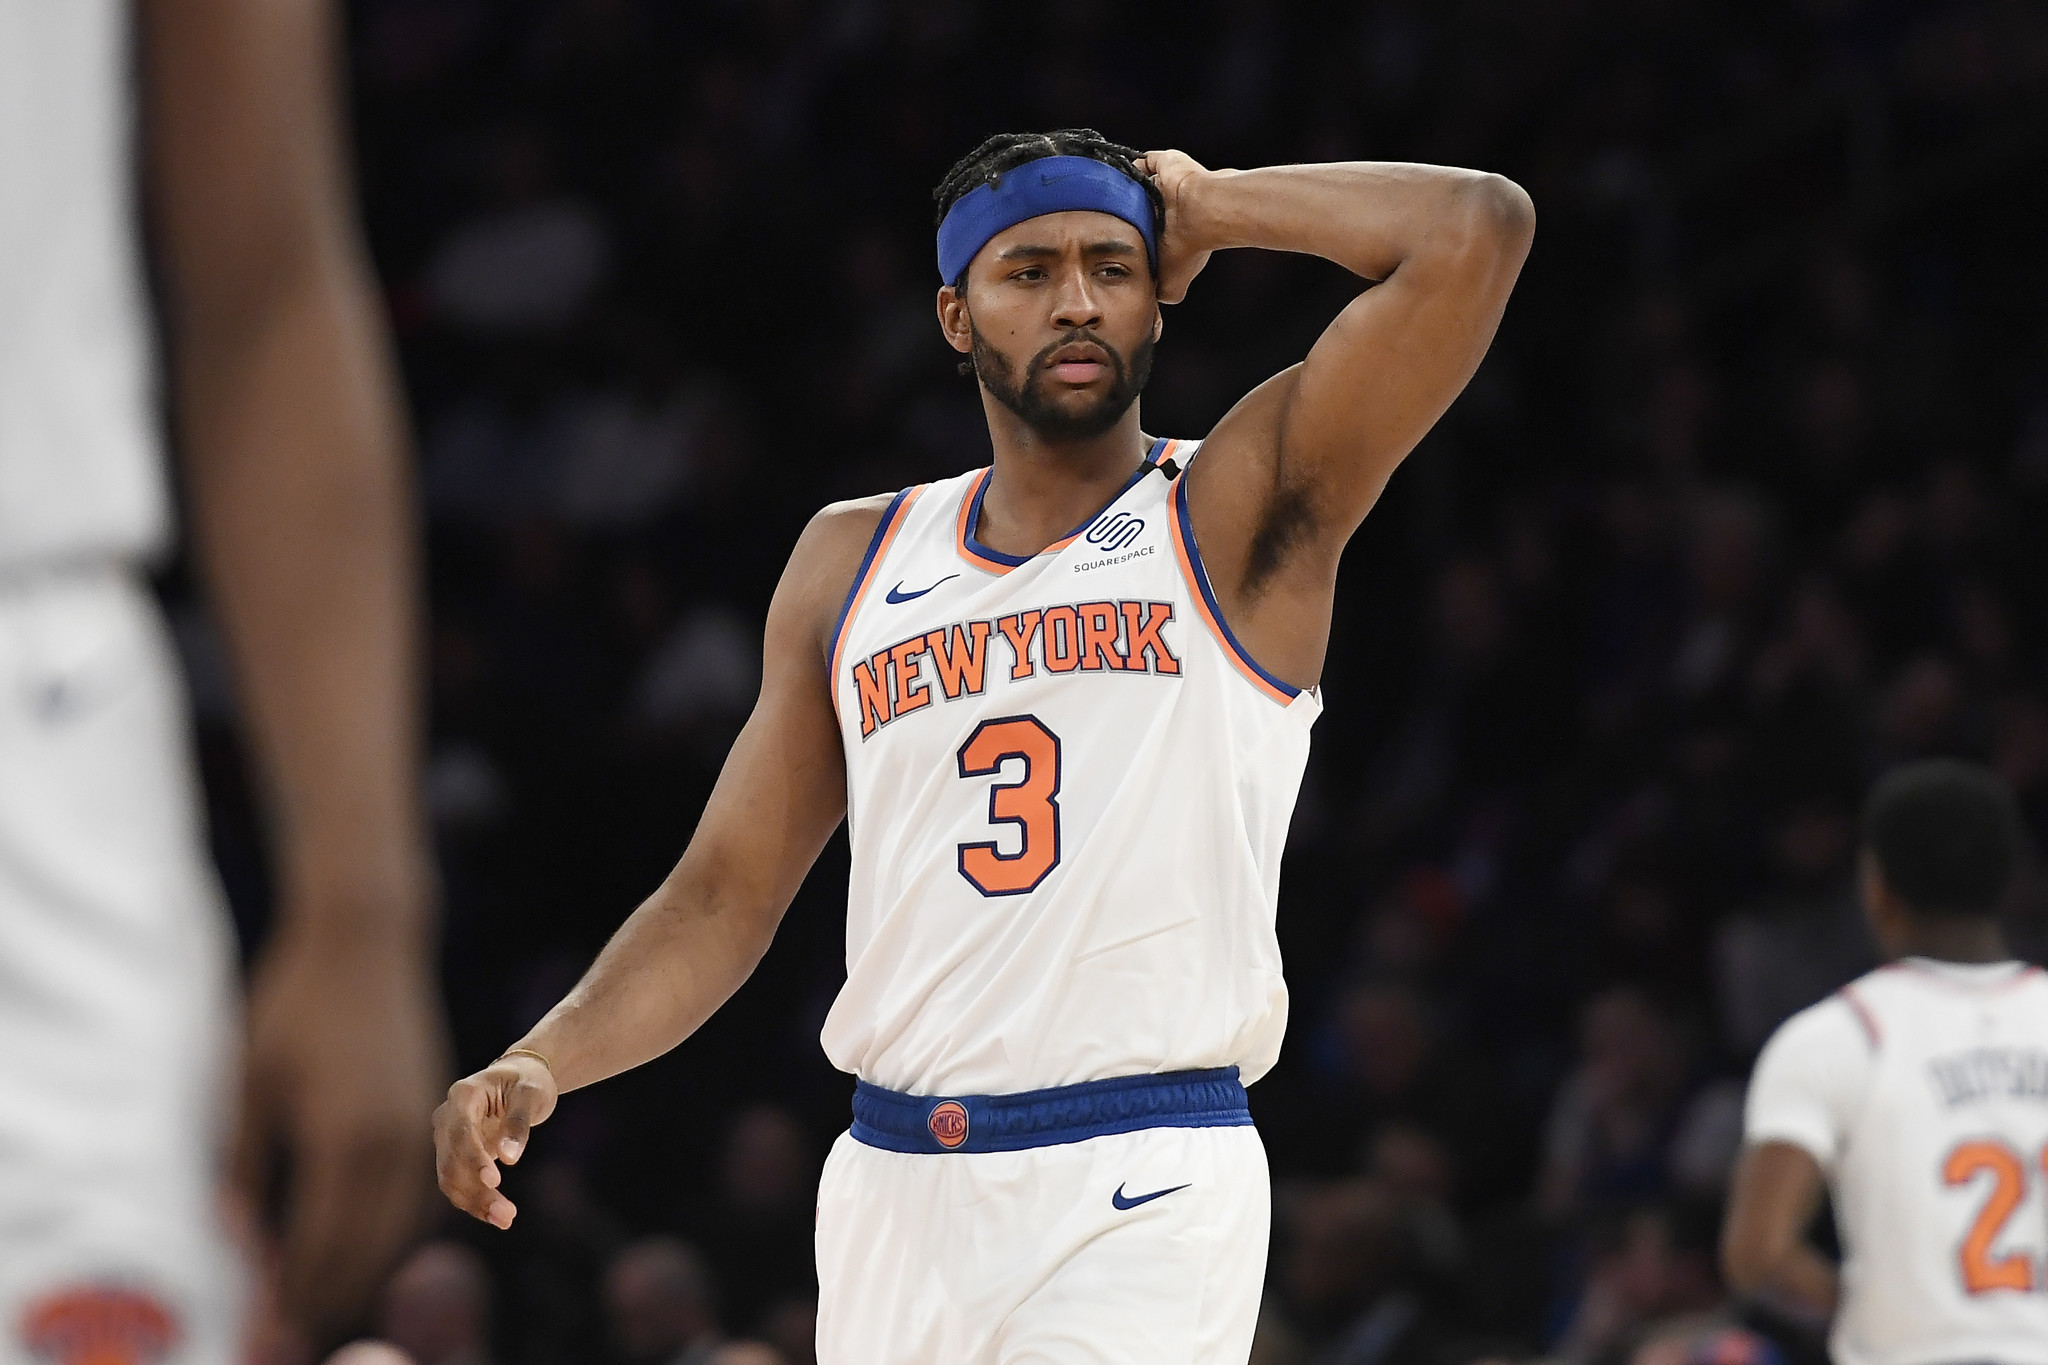 Moe Harkless on going from successful Clippers to lottery-bound Knicks: 'Everything is different, the culture and everything'